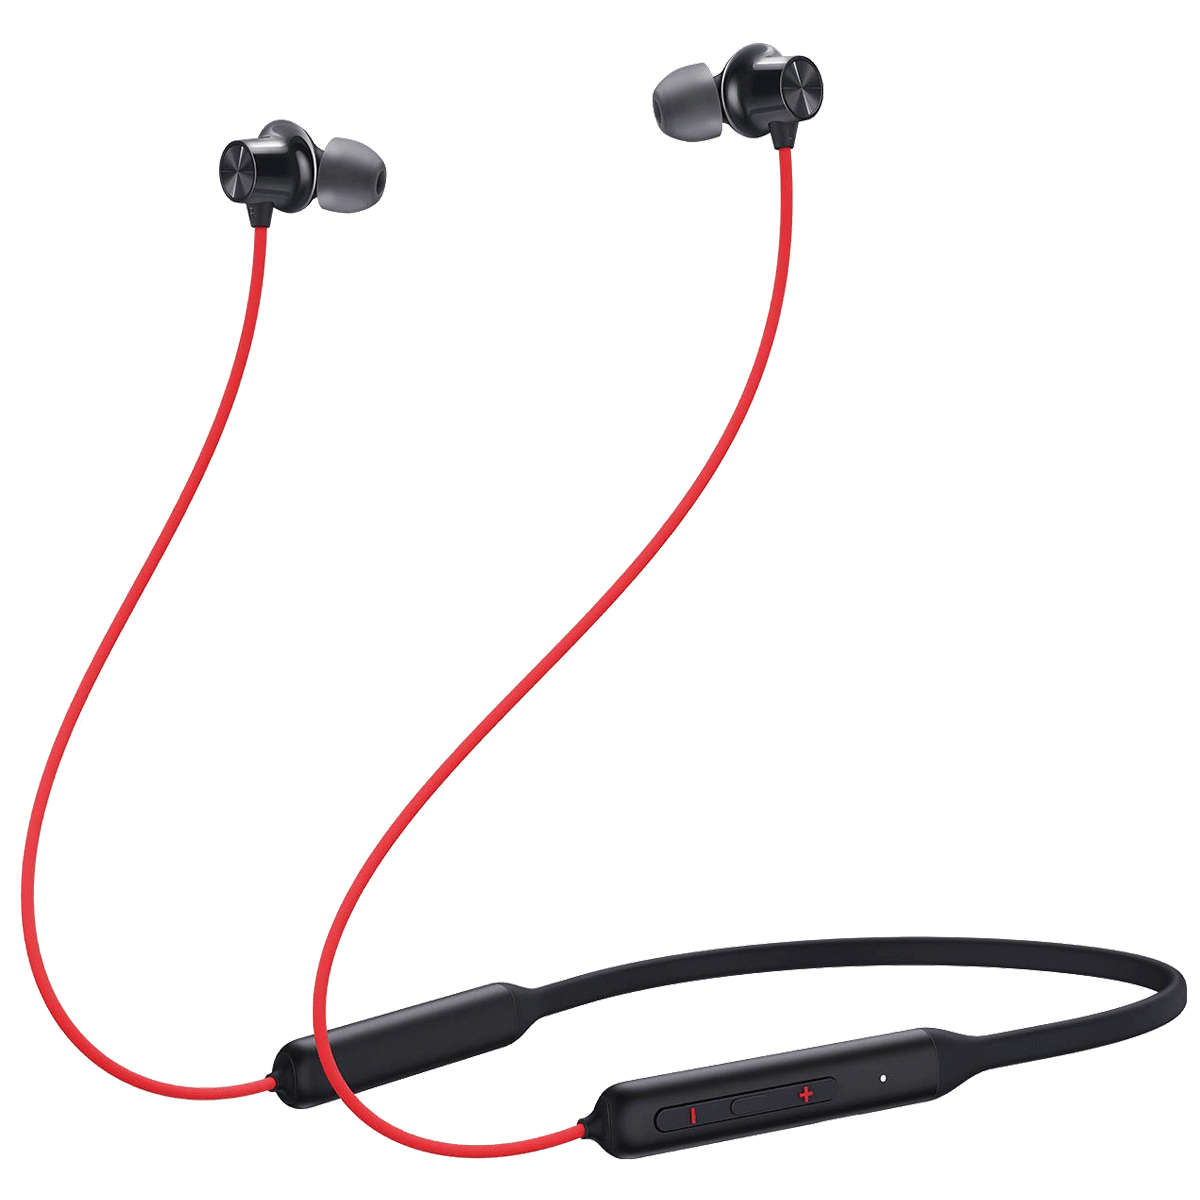 OnePlus Bullets Wireless Z Bass Edition In-Ear Wireless Earphone with Mic (Bluetooth 5.0, Quick Switch, 5481100054, Reverb Red)